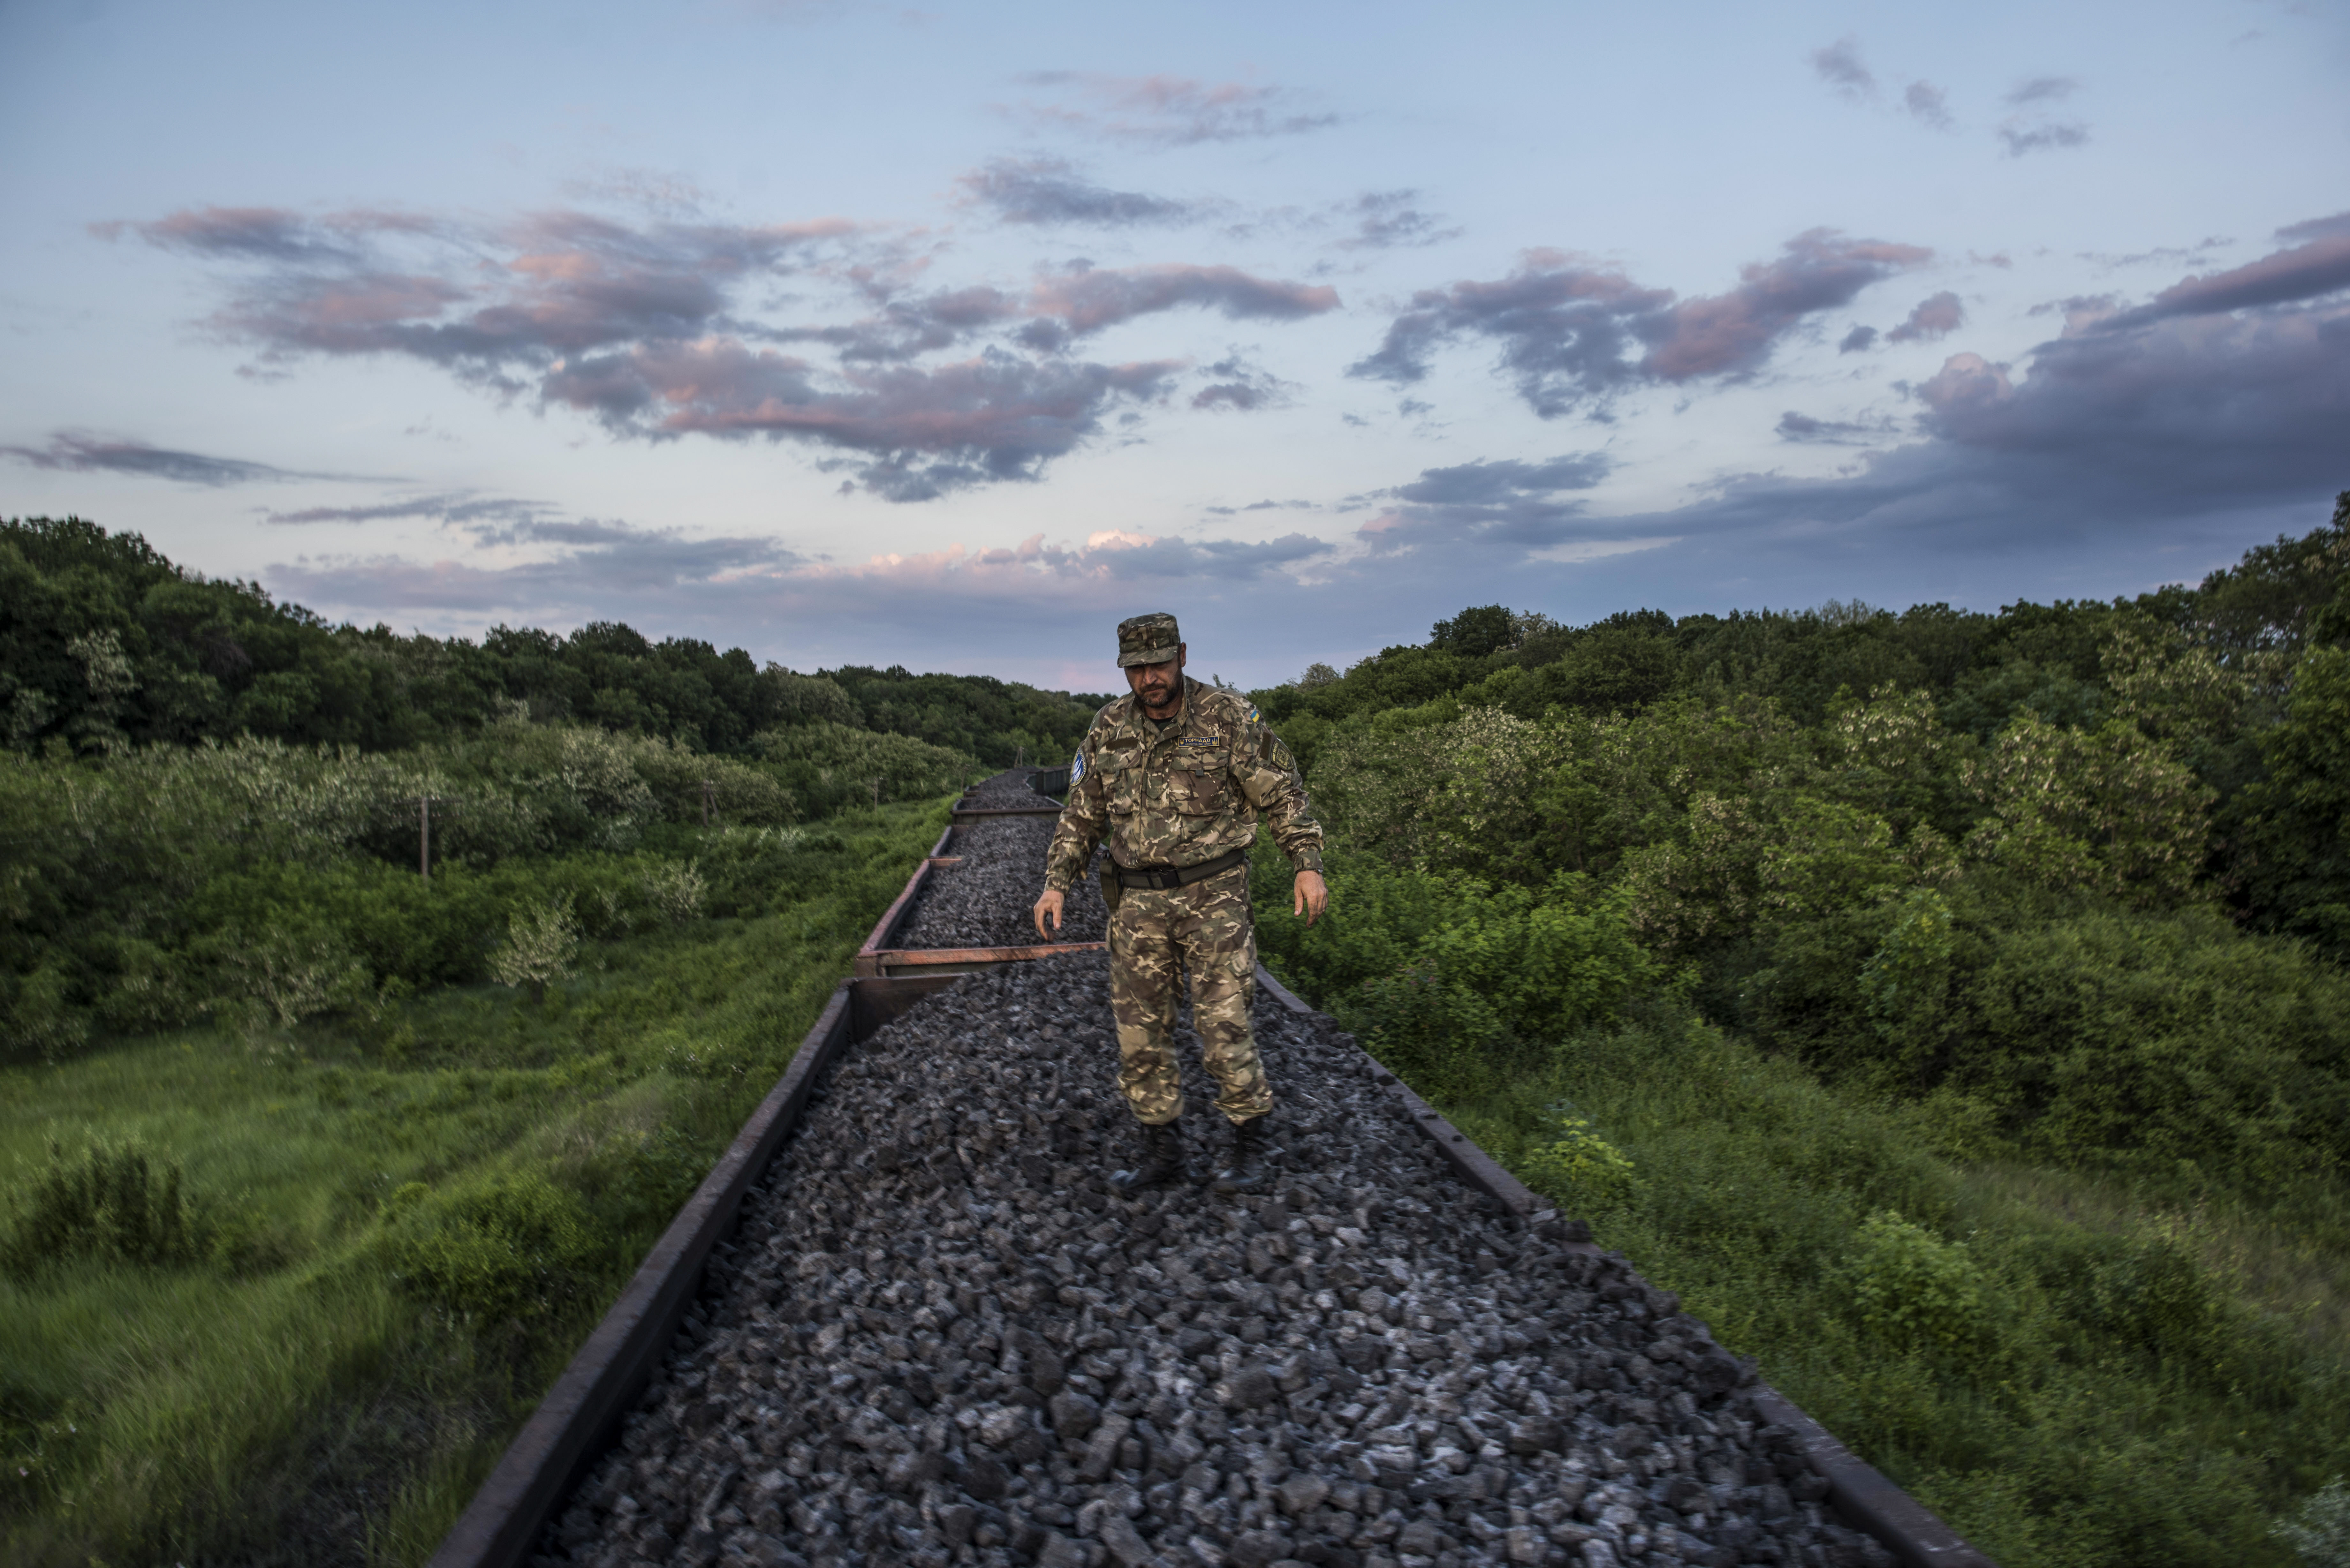 Ukraine-1 FILE - In this Tuesday, June 2, 2015 file photo, Mykola Tsukur, deputy commander of the volunteer Tornado battalion, stands atop a train carrying coking coal from the rebel-held parts of the Luhansk region into the government-controlled area in Orekhove, Ukraine. President Petro Poroshenko on Thursday, Feb. 16, 2017, has pledged to resume coal supplies from separatist-controlled parts of eastern Ukraine. (AP Photo/Evgeniy Maloletka, File)